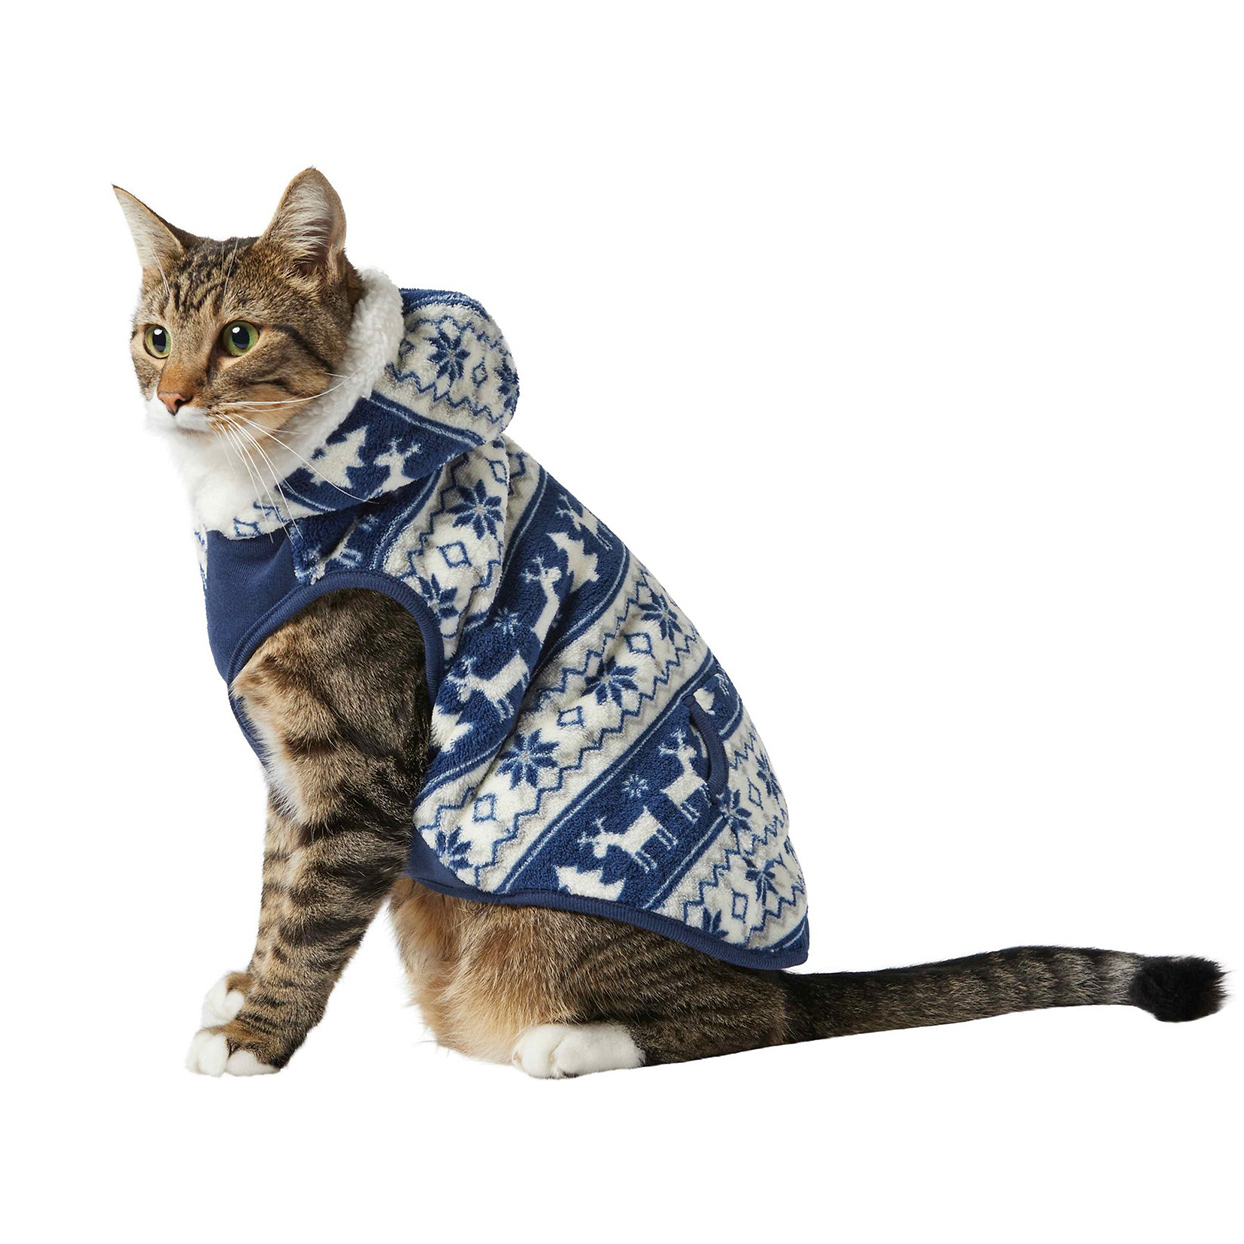 Cat wearing a Frisco Fair Isle Fleece Lined Cat Hoodie on a white background